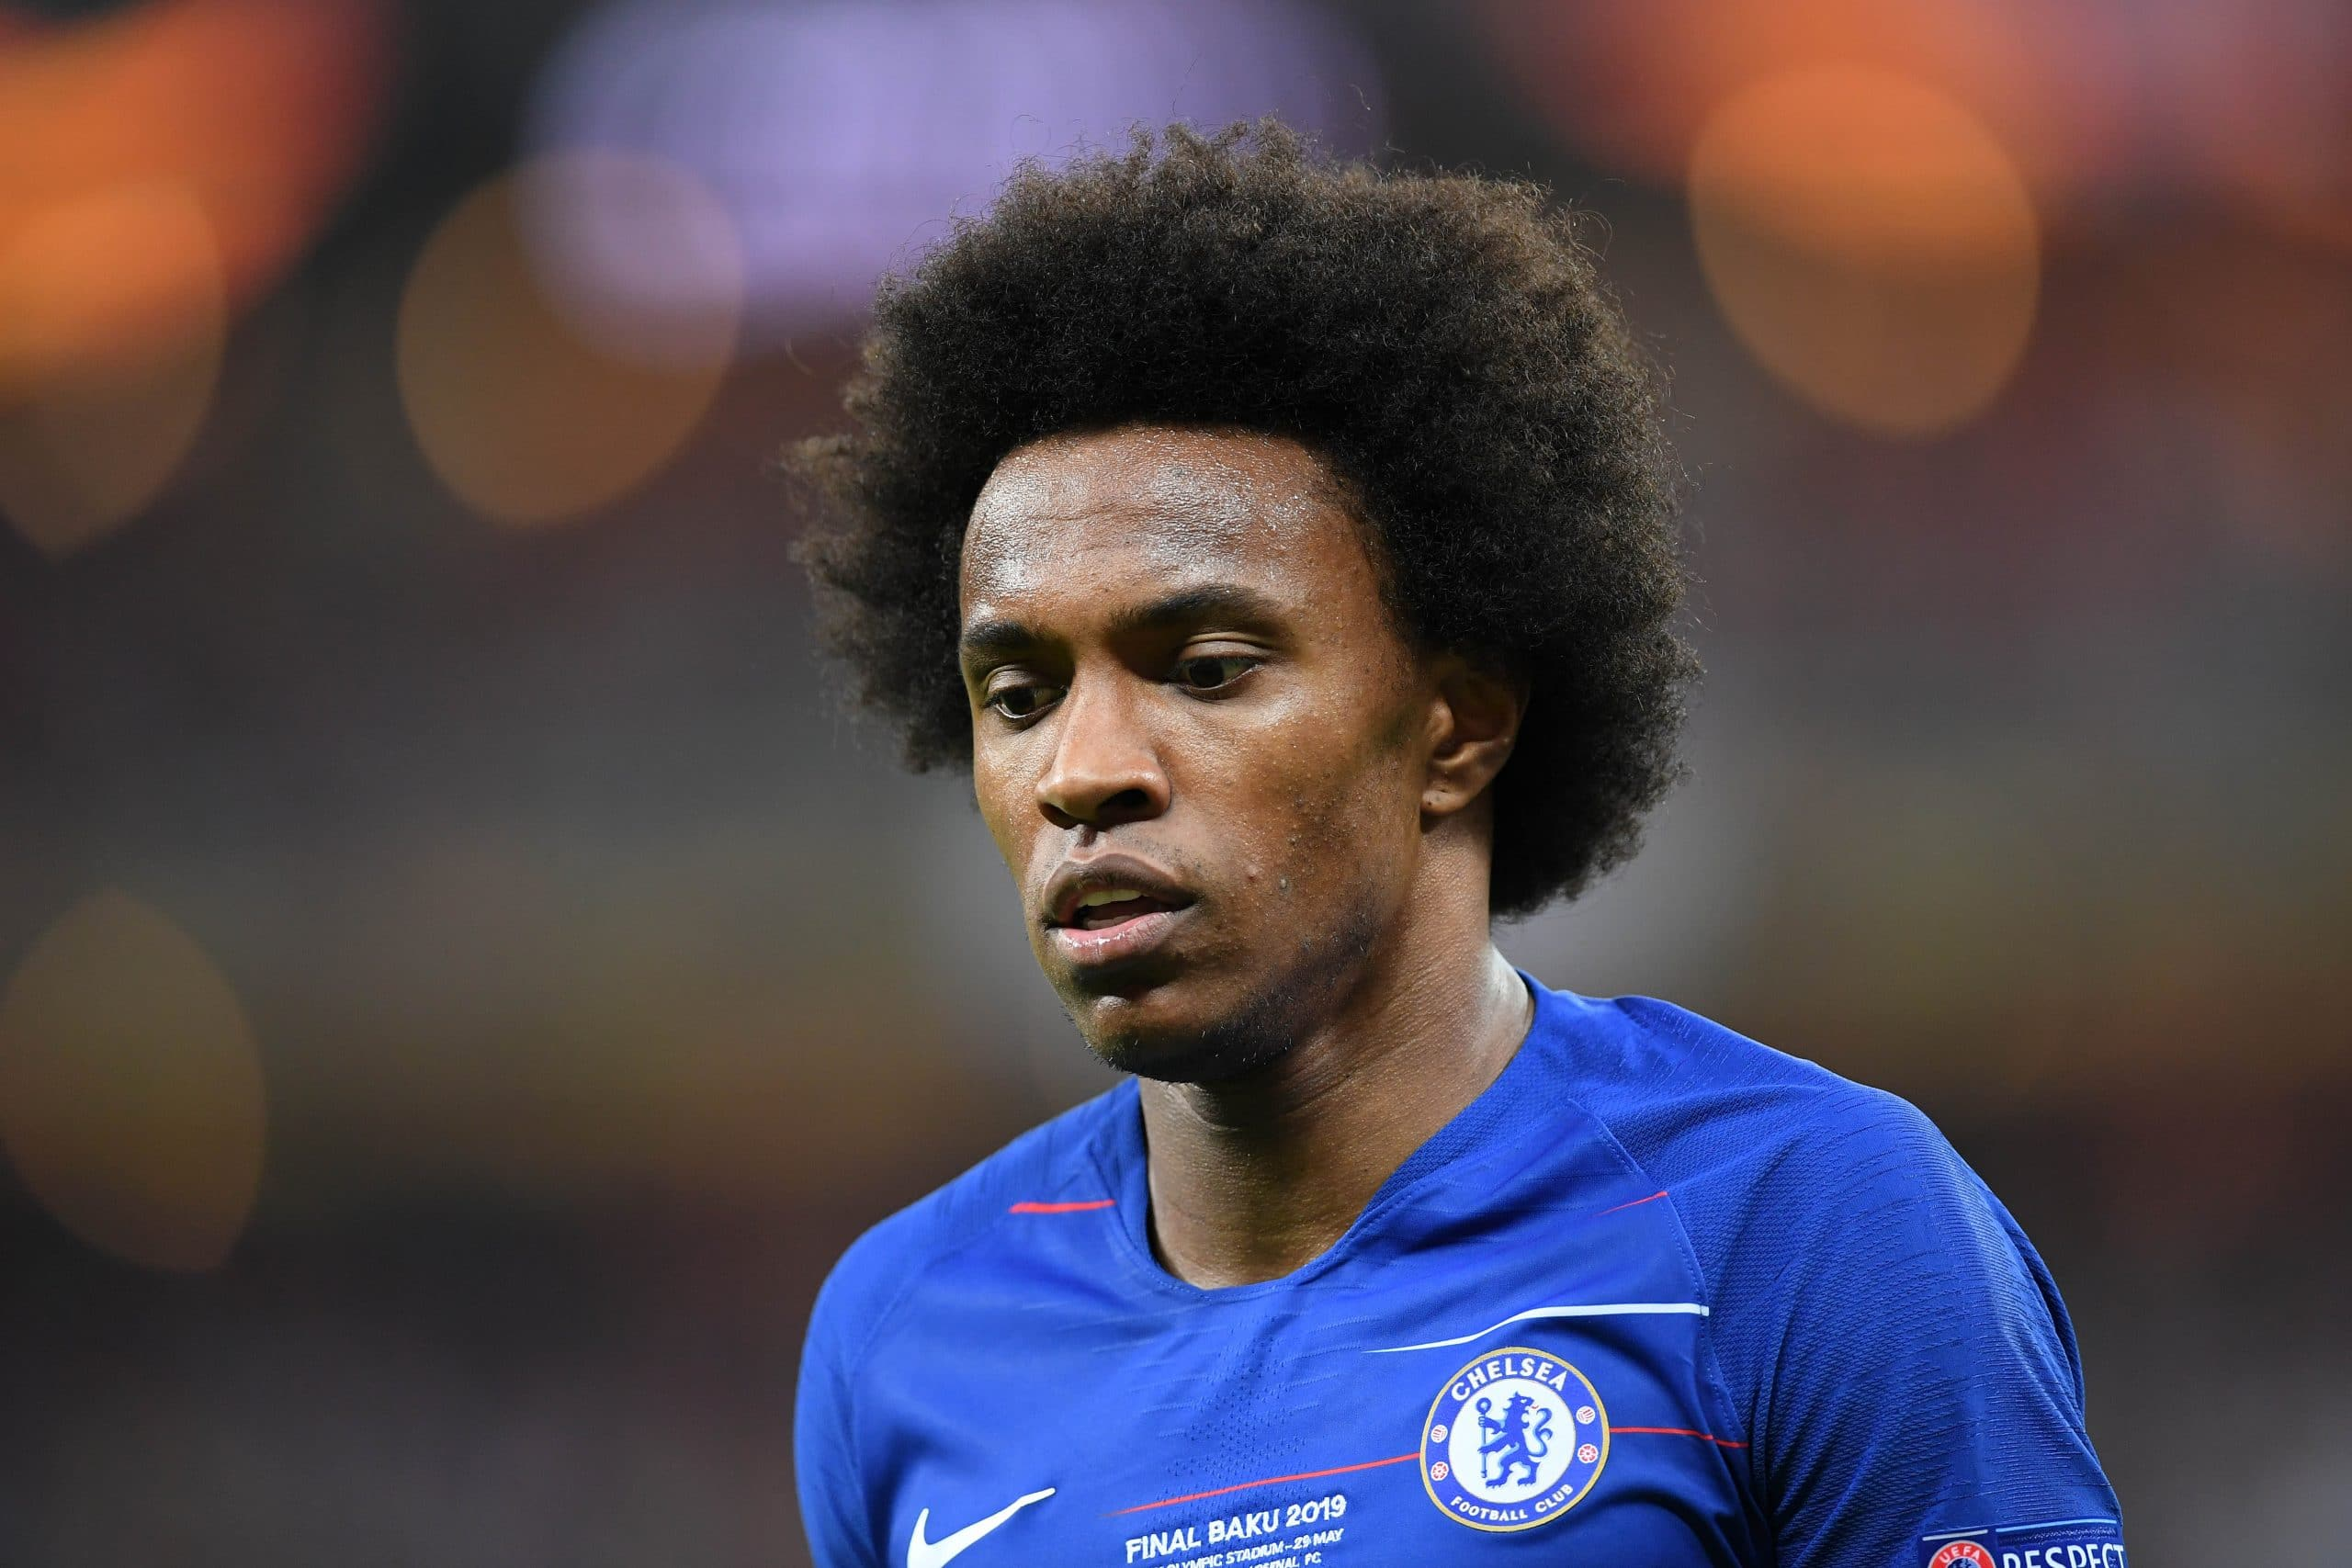 Chelsea players to leave